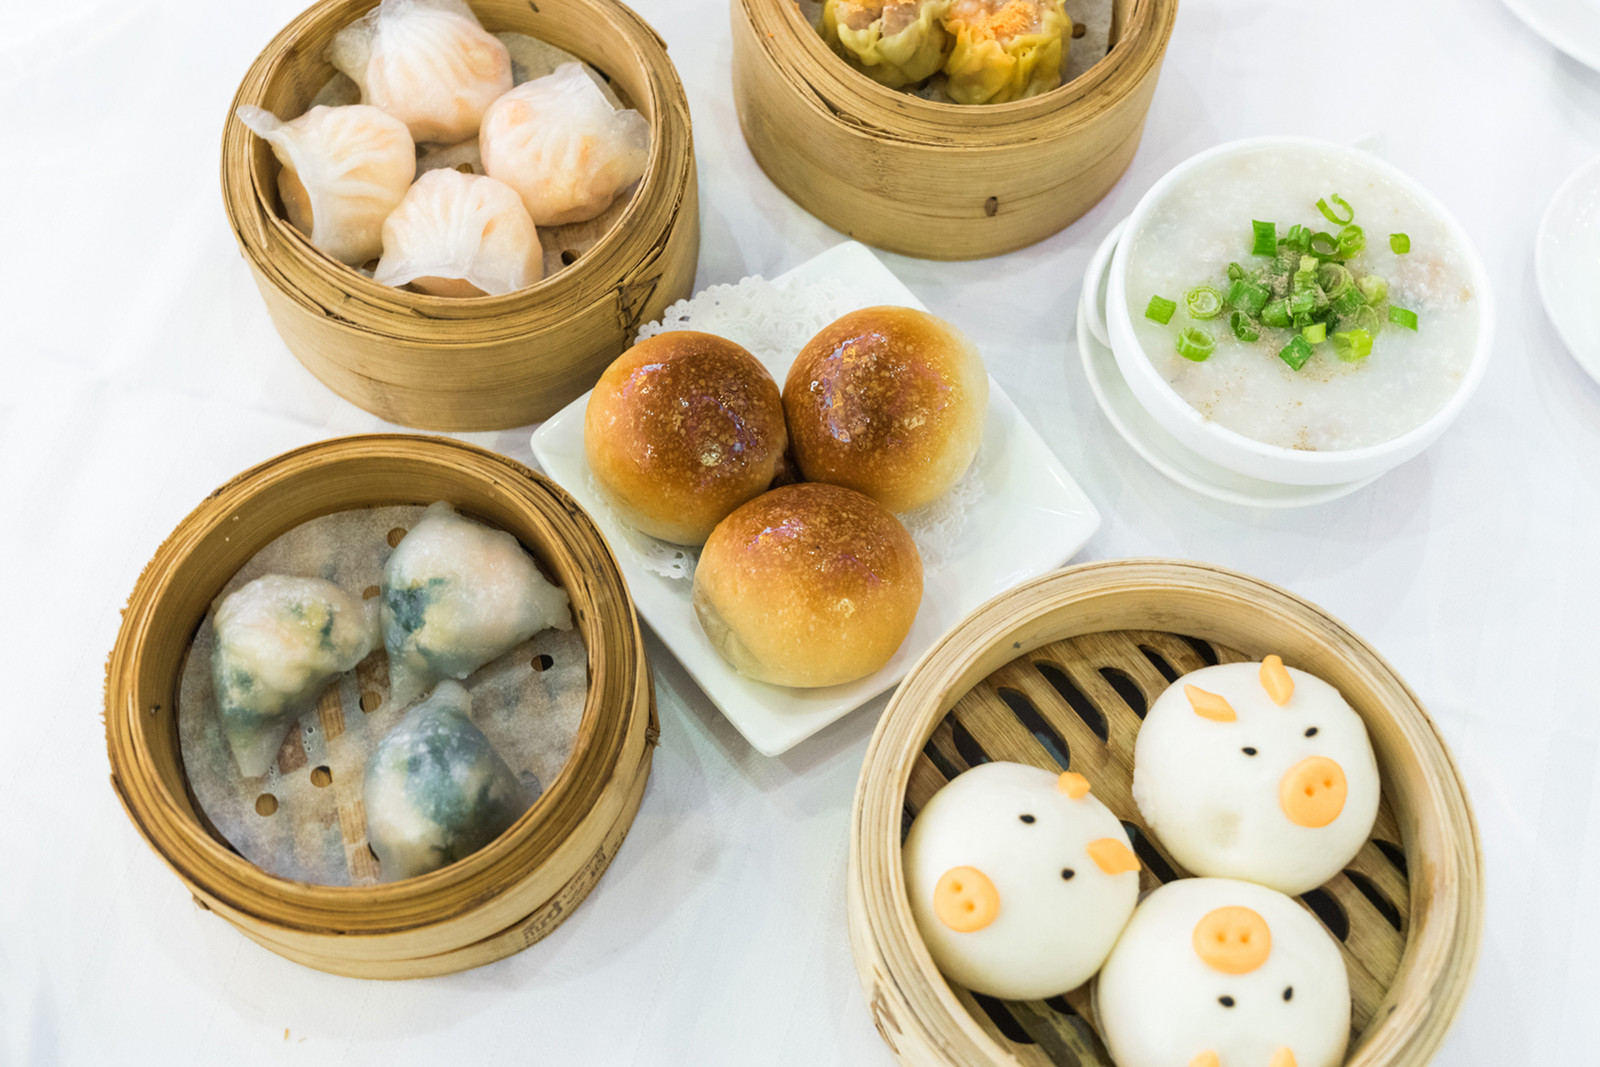 Golden Unicorn Restaurant Dim Sum Chinatown New York City